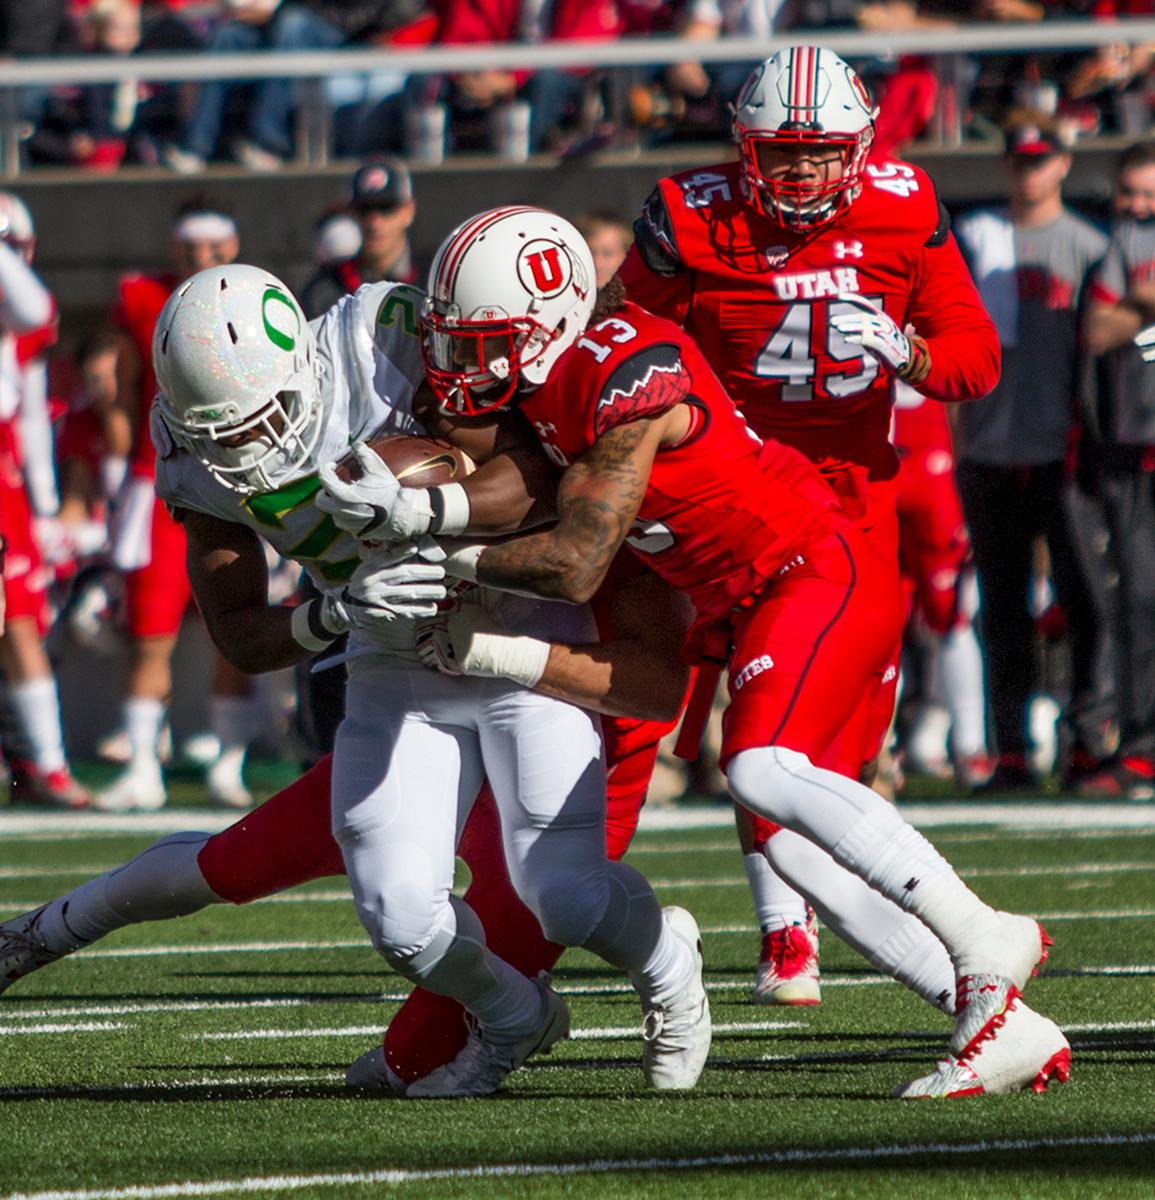 Utah Utes Jordan Fogal (#13) tackles Oregon Ducks Royce Freeman (#21). The Oregon Ducks beat the Utah Utes 30-28 on Saturday afternoon in Salt Lake City, UT at Rice-Ecce Stadium. Photo by Katie Pietzold